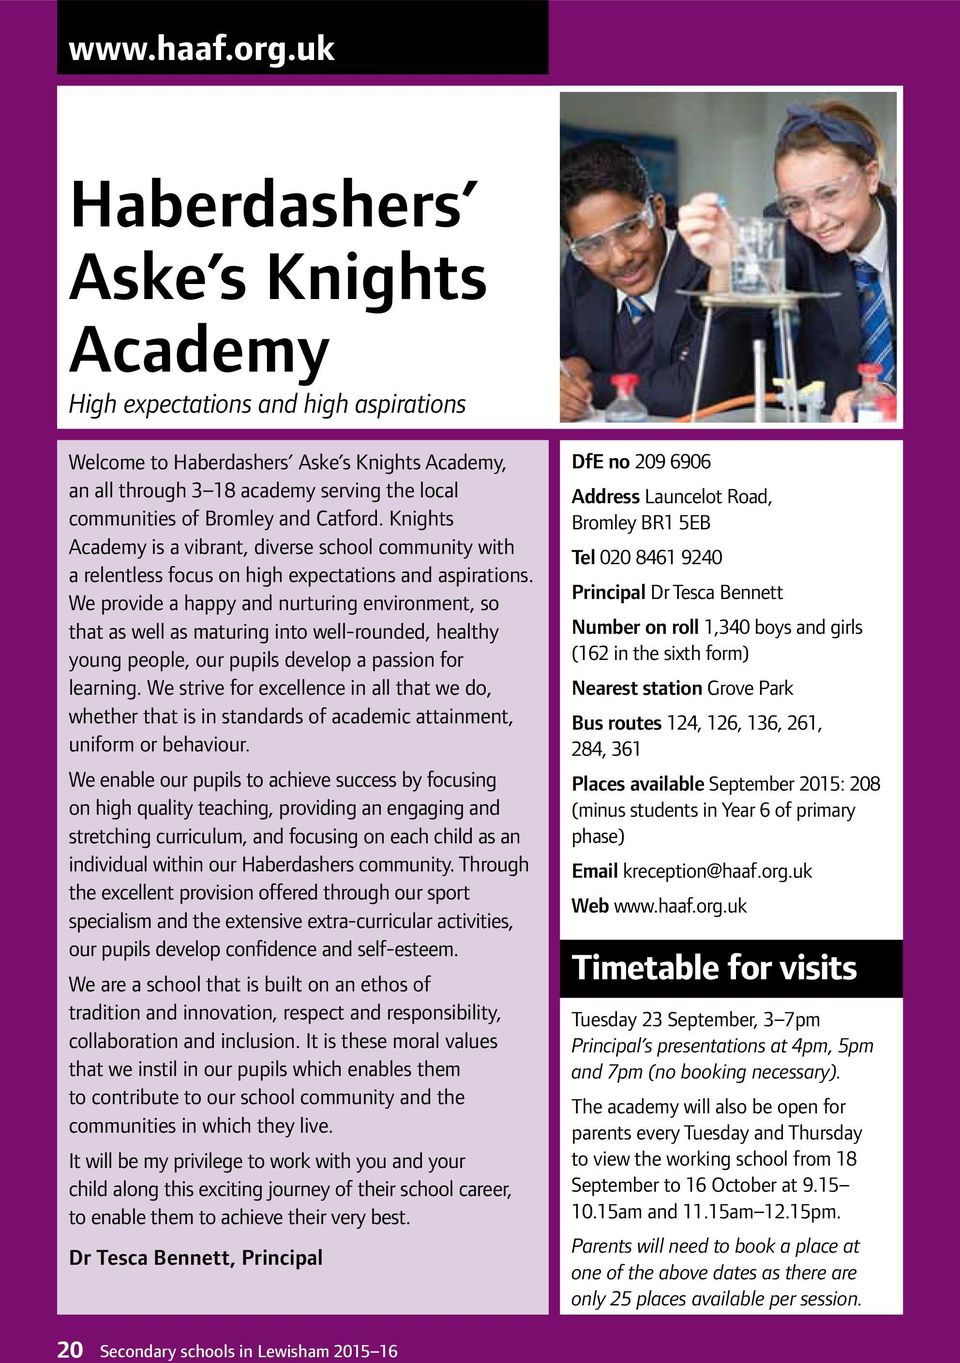 Catford. Knights Academy is a vibrant, diverse school community with a relentless focus on high expectations and aspirations.